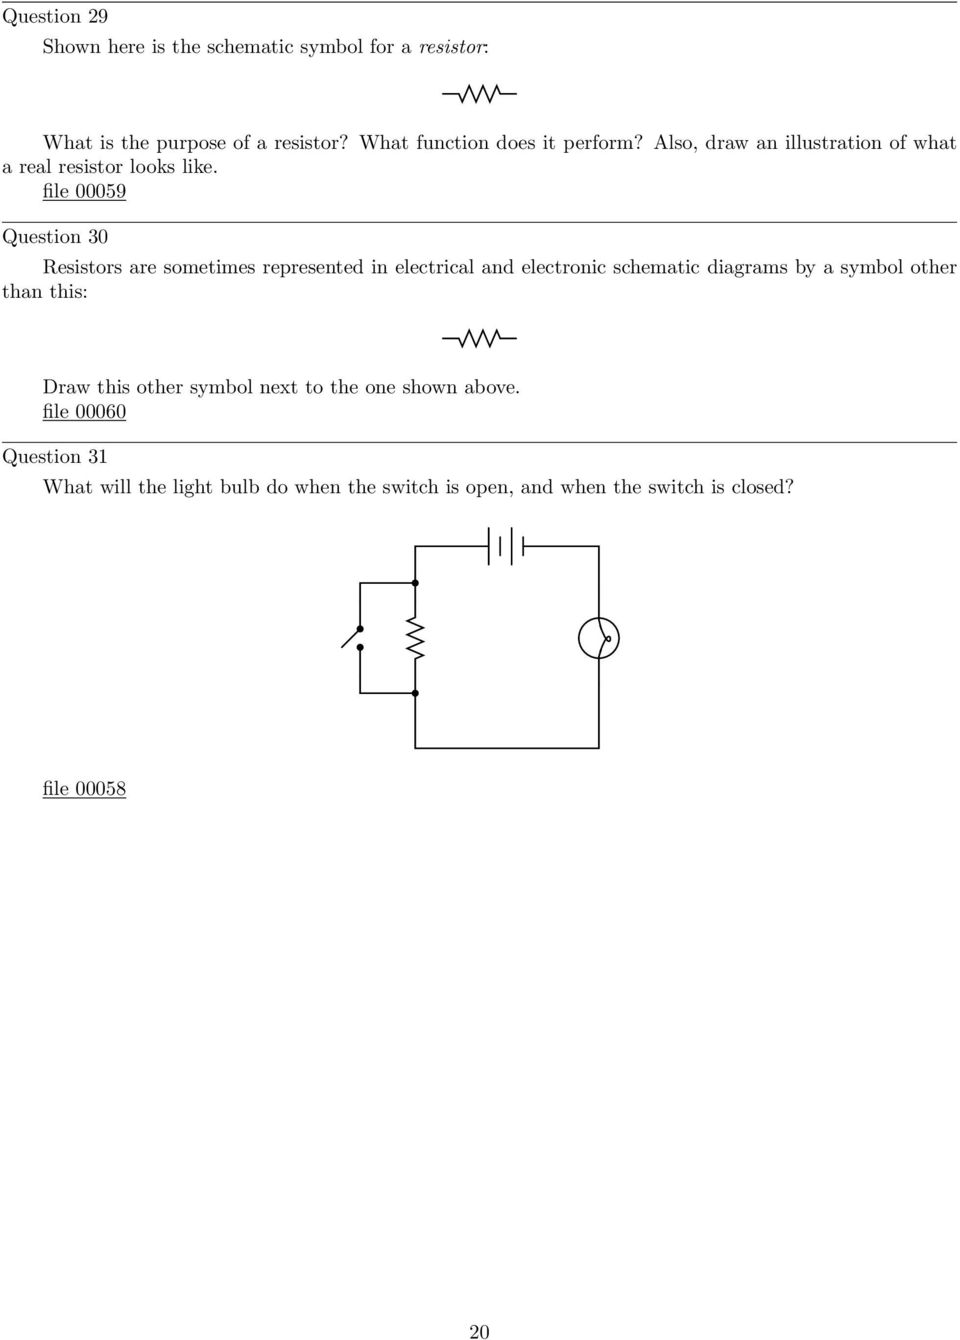 medium resolution of file 00059 question 30 resistors are sometimes represented in electrical and electronic schematic diagrams by a